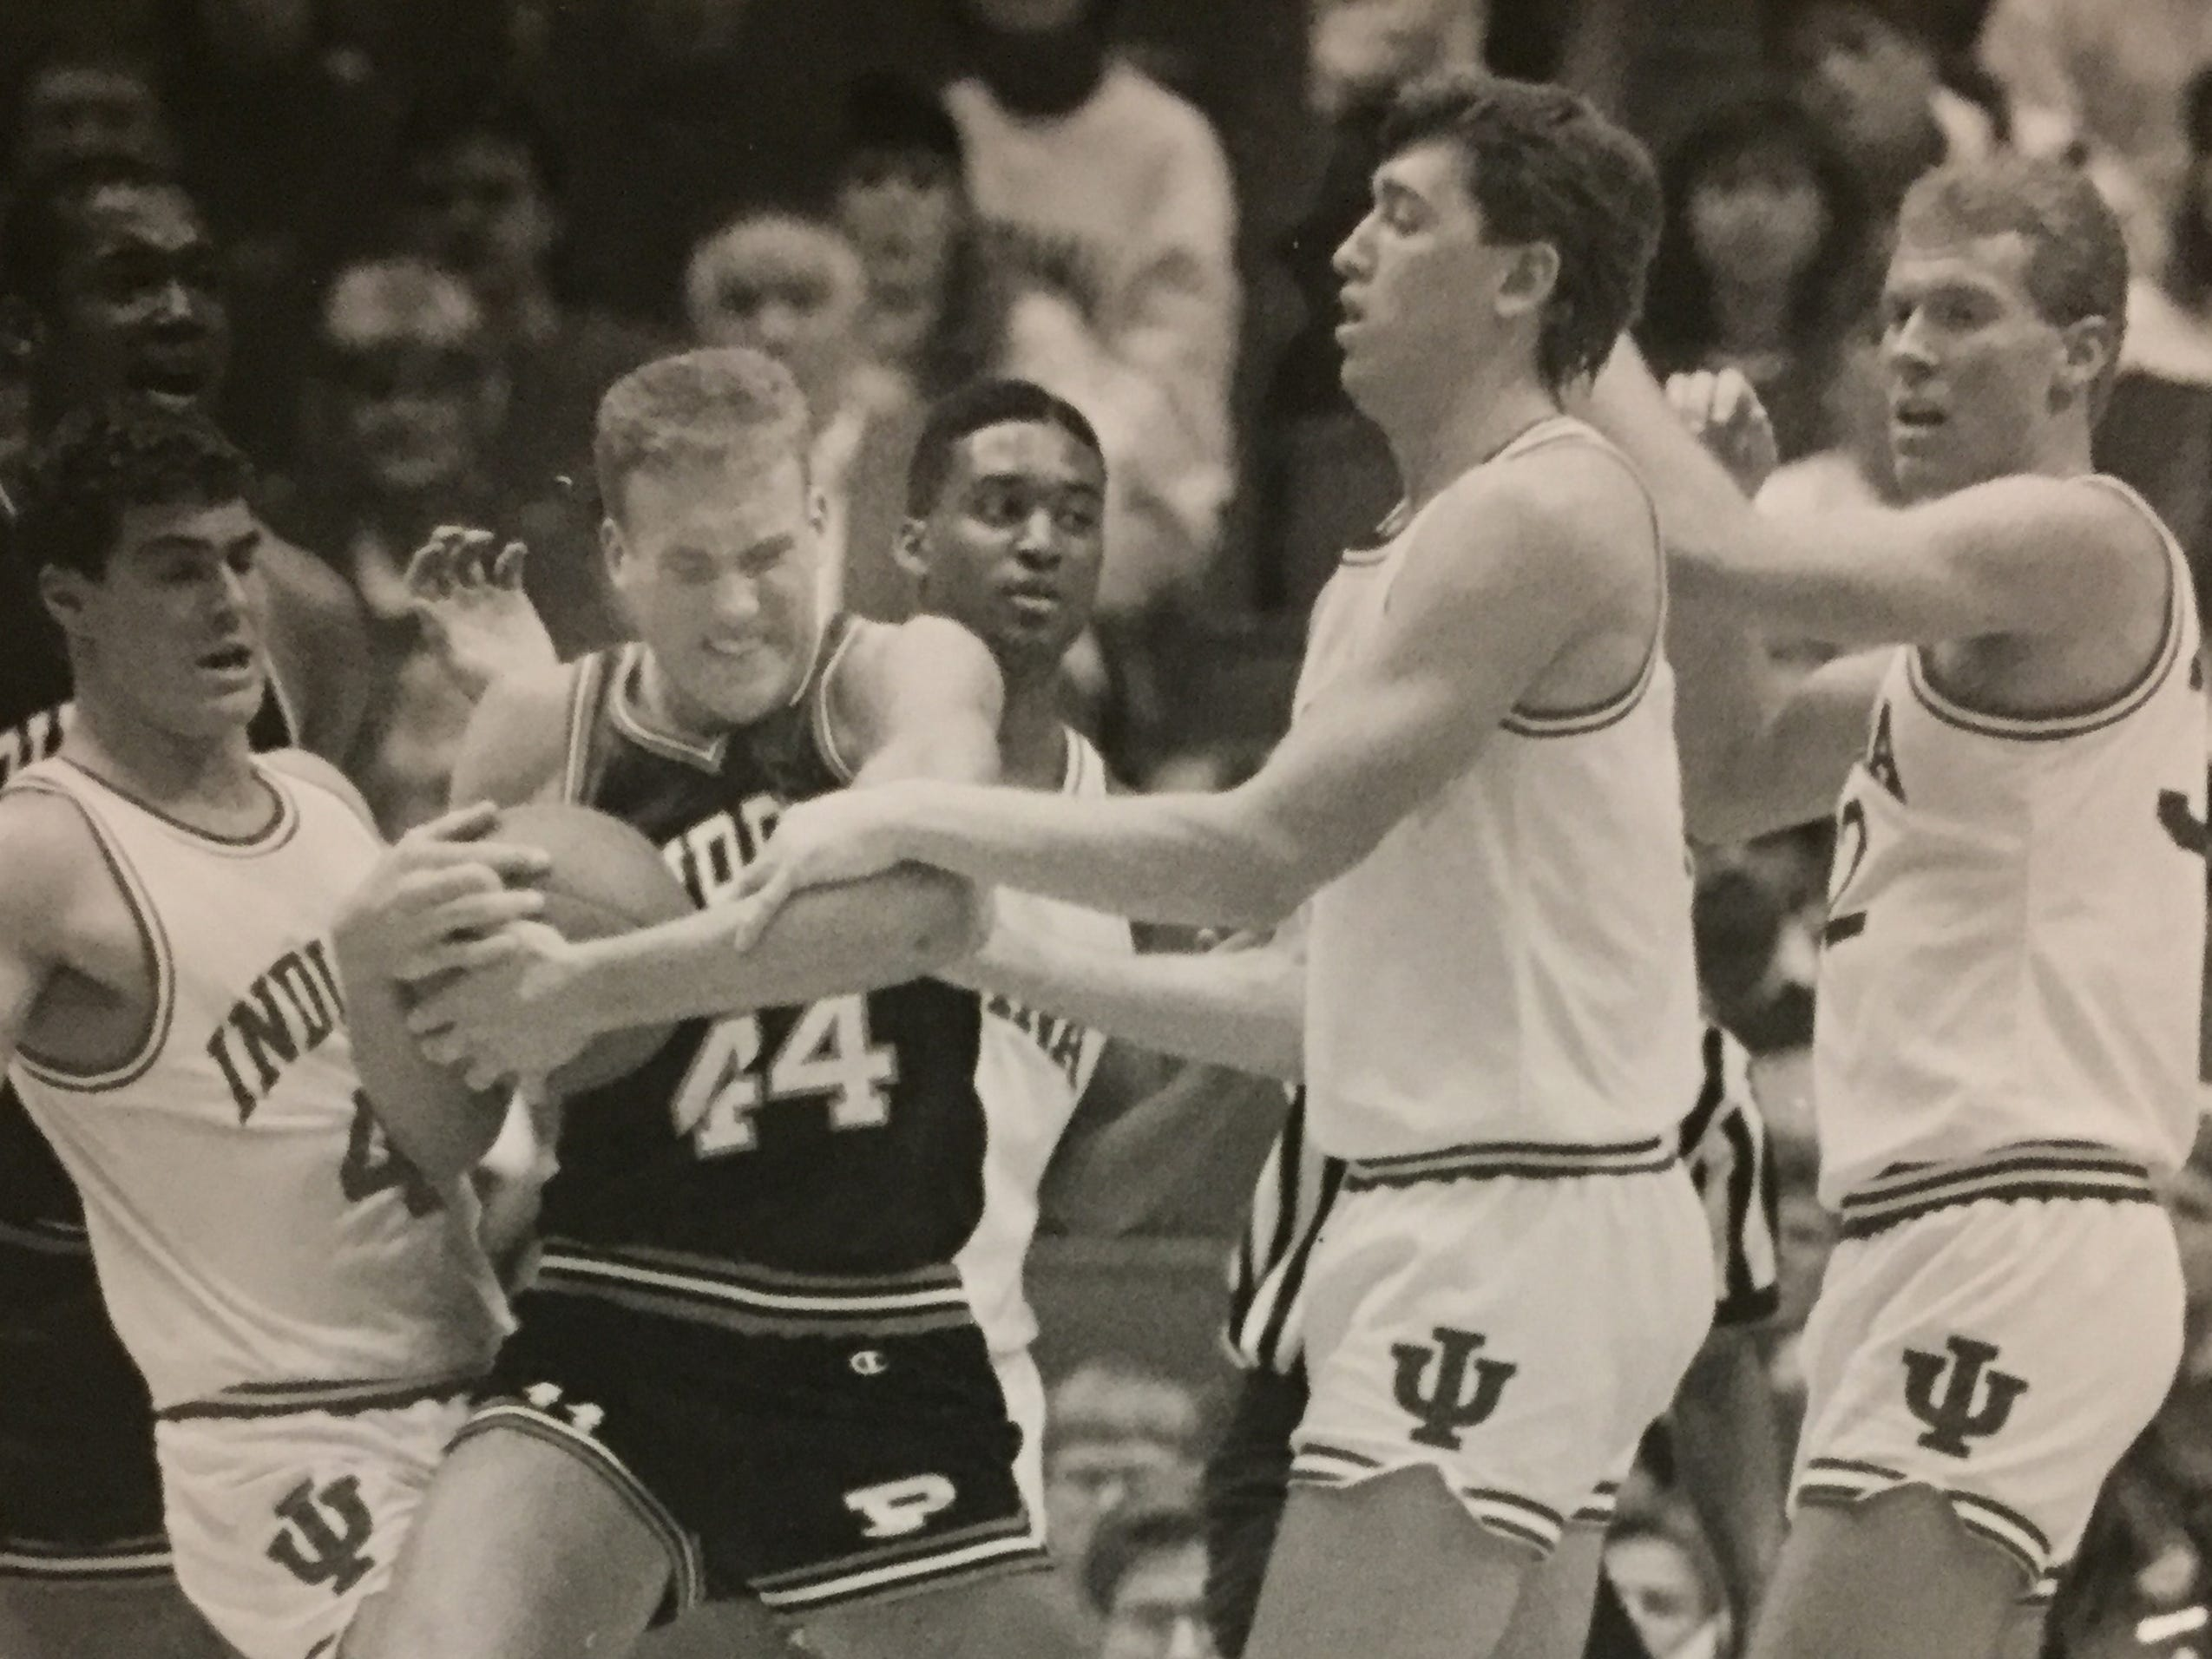 Purdue's John Brugos is guarded by four Hoosiers (left to right) Joe Hillman, Lyndon Jones, Todd Jadlow and Eric Anderson on Feb. 12, 1989.